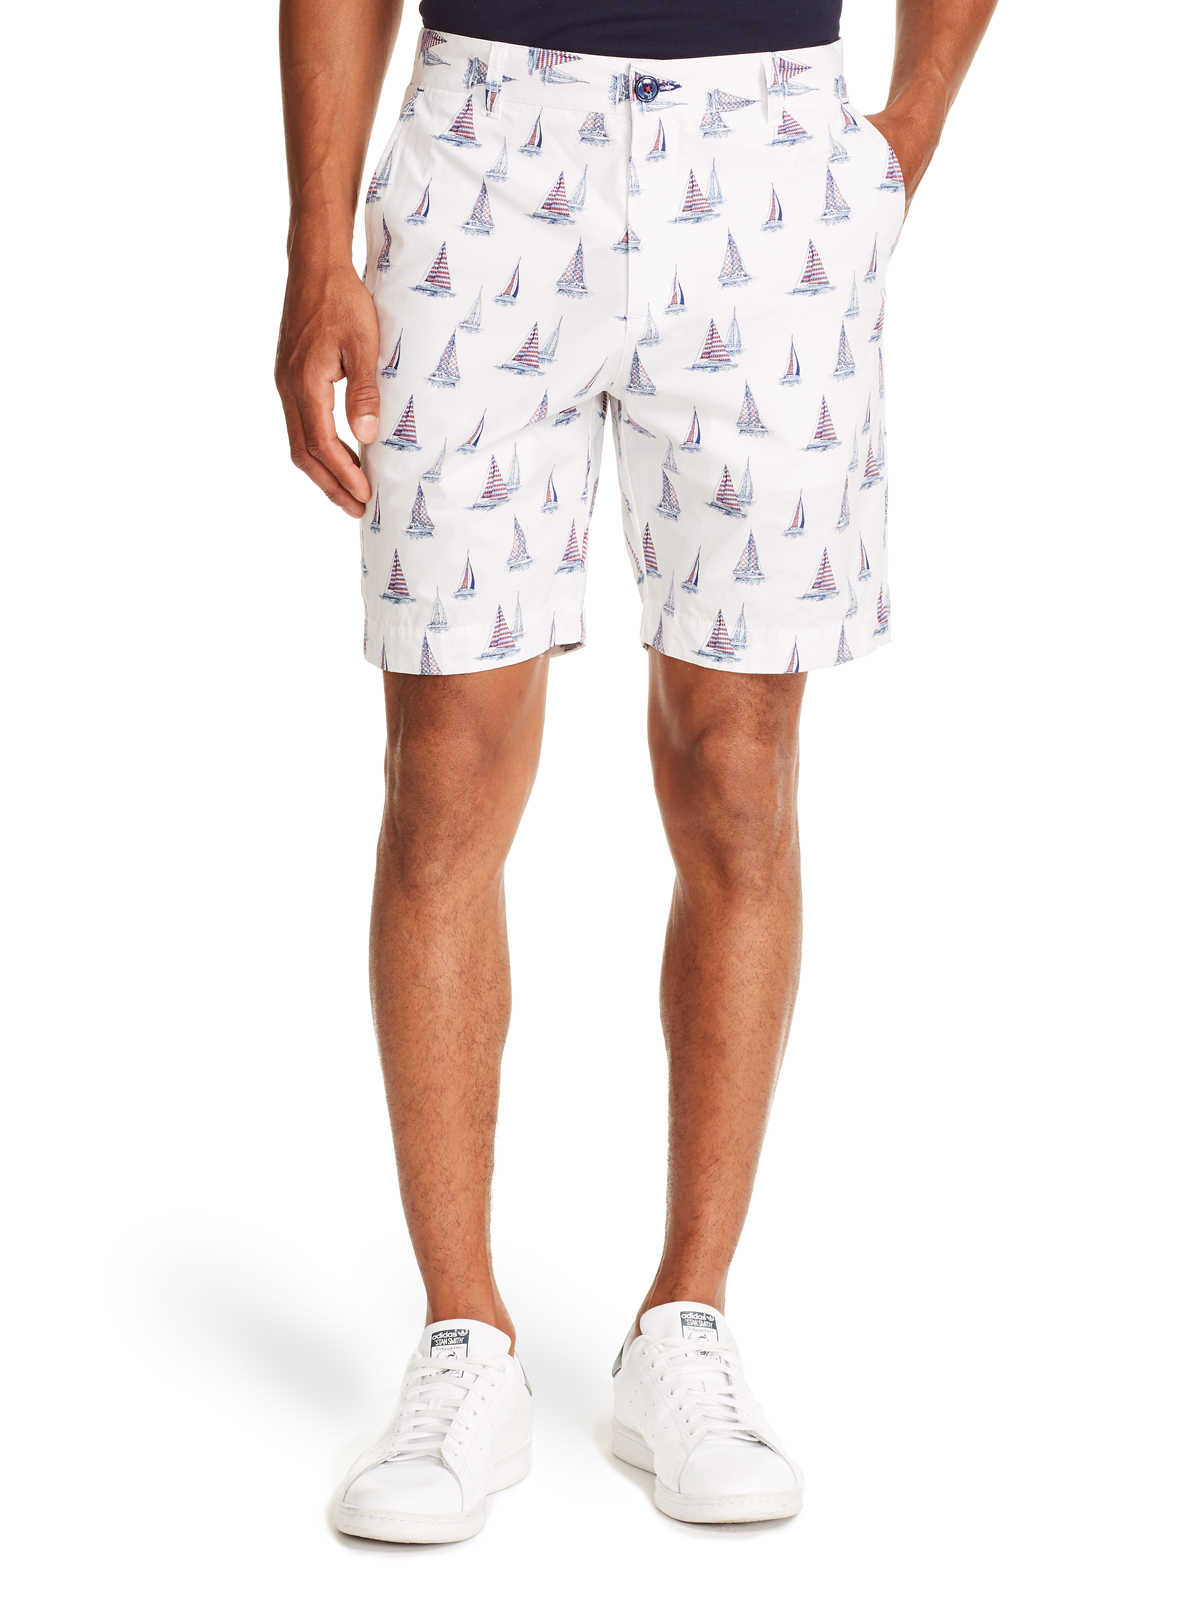 WHITE BOAT PRINT SHORTS FOR MEN FRONT VIEW